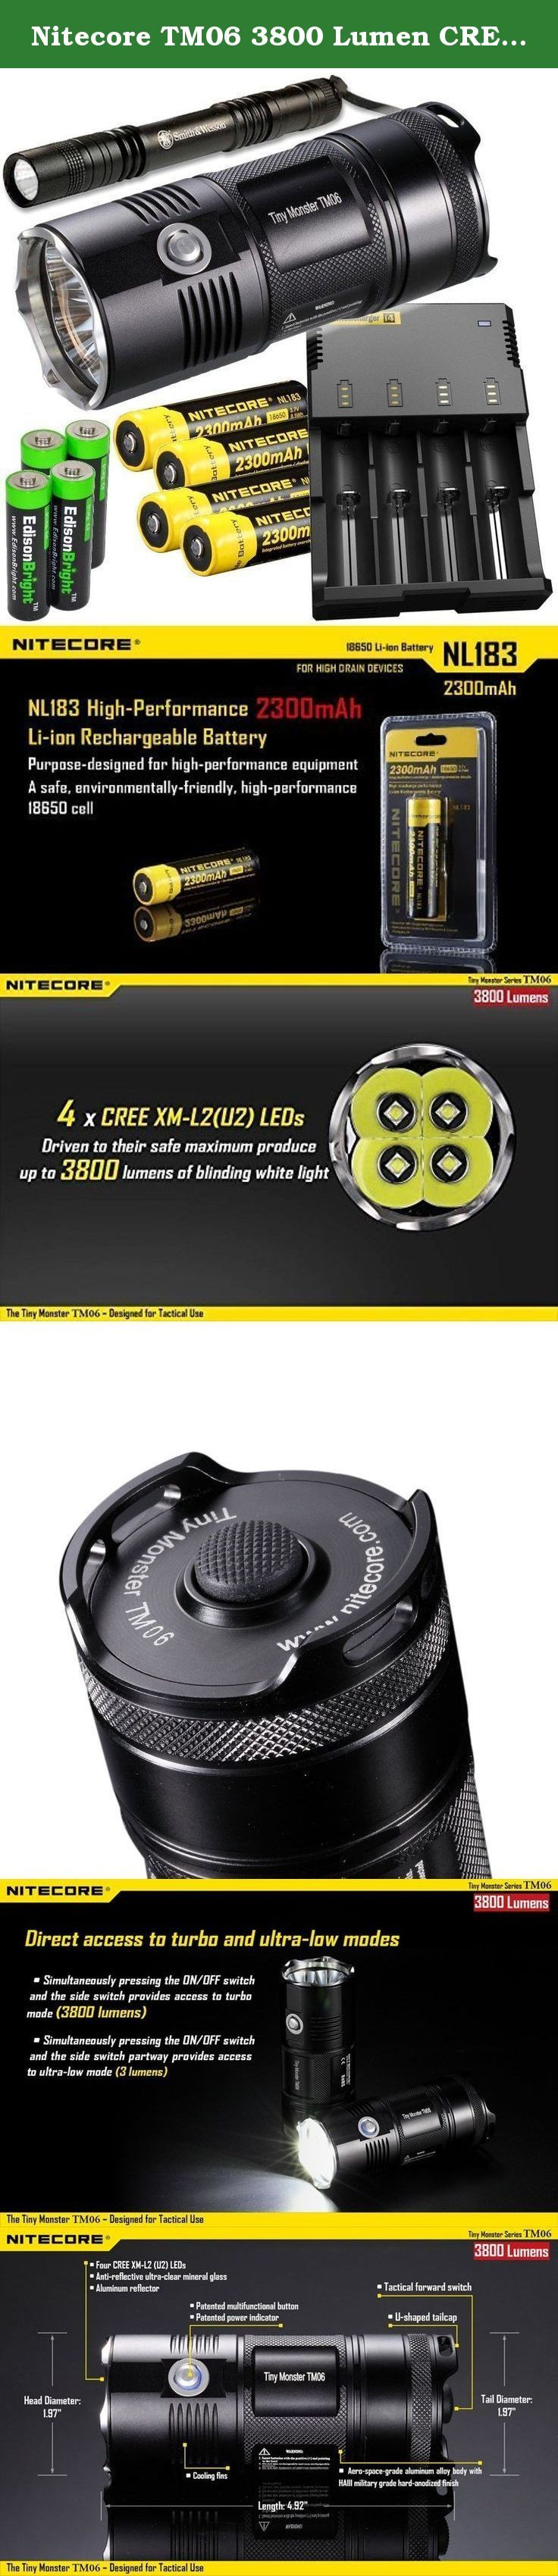 Nitecore TM06 3800 Lumen CREE LED super compact Flashlight/Searchlight, Nitecore i4 smart charger, 4 X Nitecore NL183 18650 Li-ion batteries, Smith & Wesson Pathmarker LED flashlight, with 4 x EdisonBright AA Alkaline batteries bundle. Features · Innovative two stage side switch accesses different modes and functions · Integrated power indicator on side switch indicates remaining battery power · Power indicator displays battery voltage accurate to 0.1V · Direct access to ultra-low or…